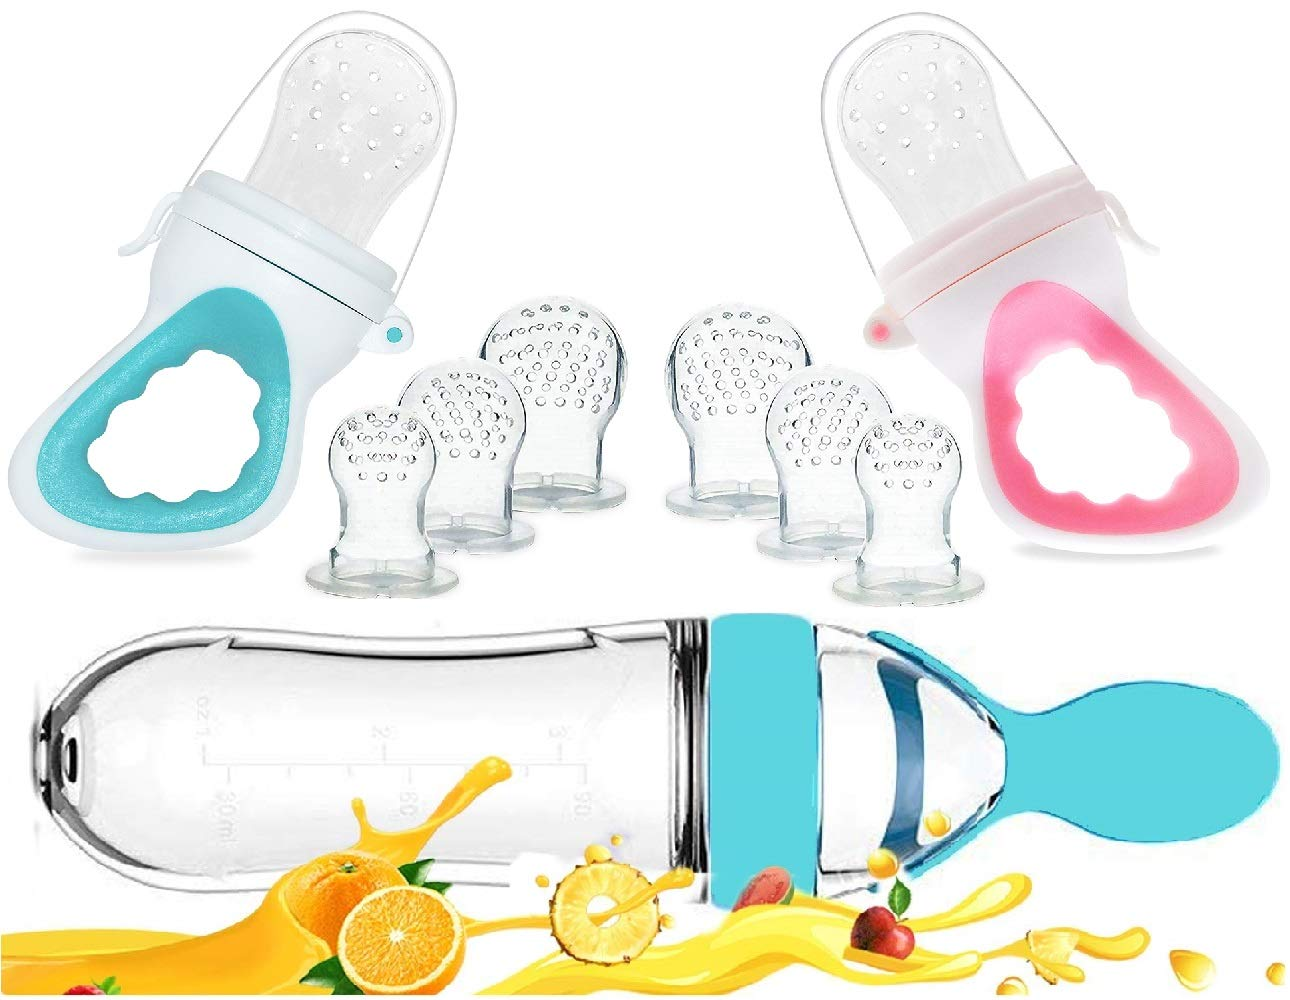 Baby Food Feeder, Fresh Food - 2 Pack Fruit Feeder Pacifier, 6 Different Sized Silicone Pacifiers | 1 Pack Baby Food Dispensing Spoon (Blue and Pink)